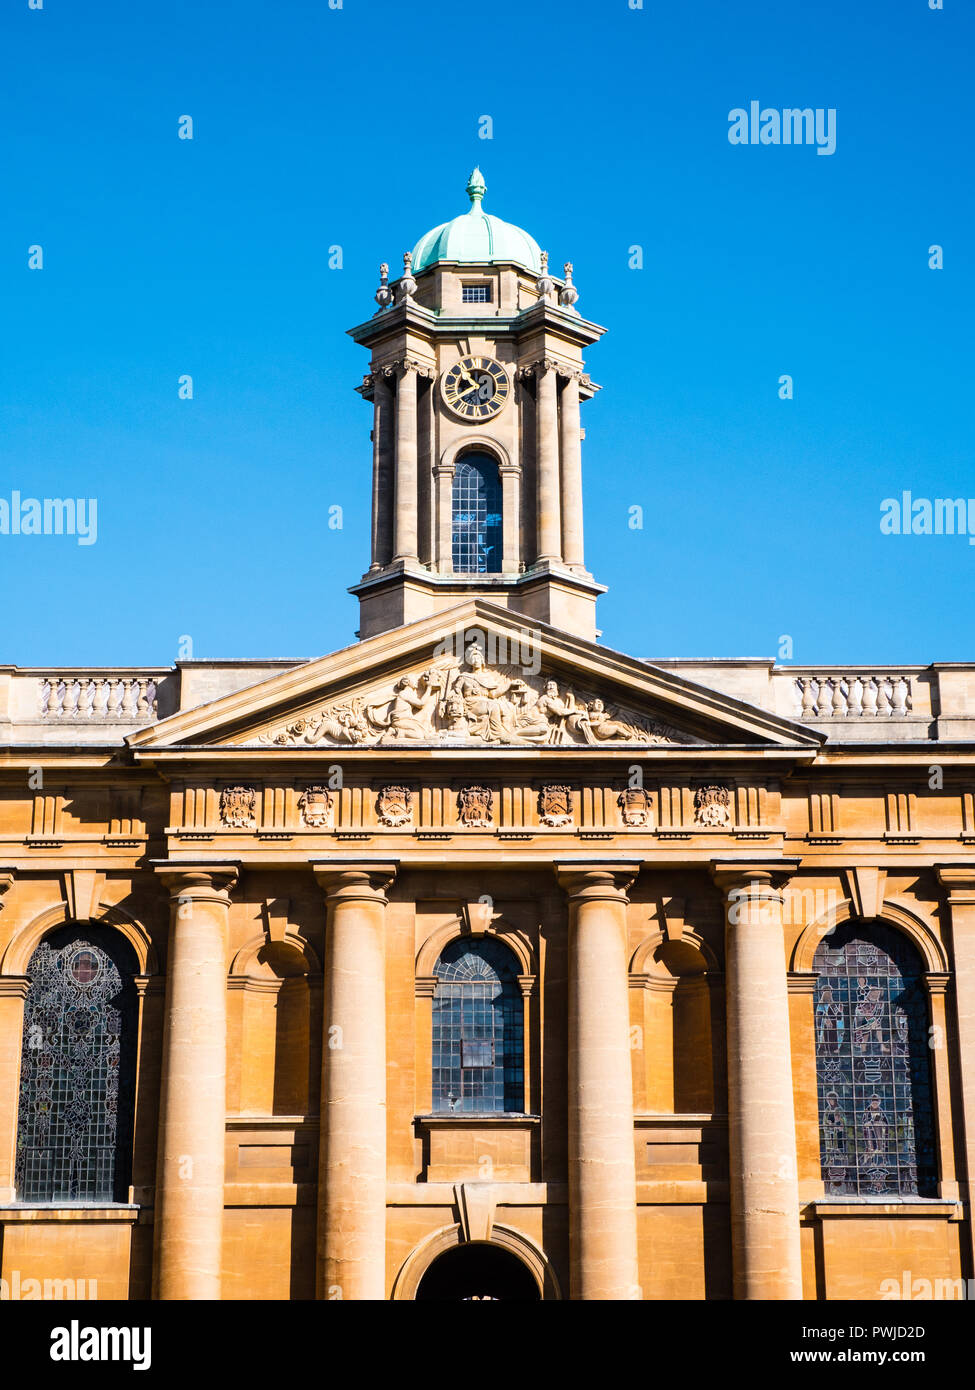 Clock Tower, Front Quad, Queens Collage, Oxford University, Oxford, Oxfordshire, England, UK, GB. - Stock Image